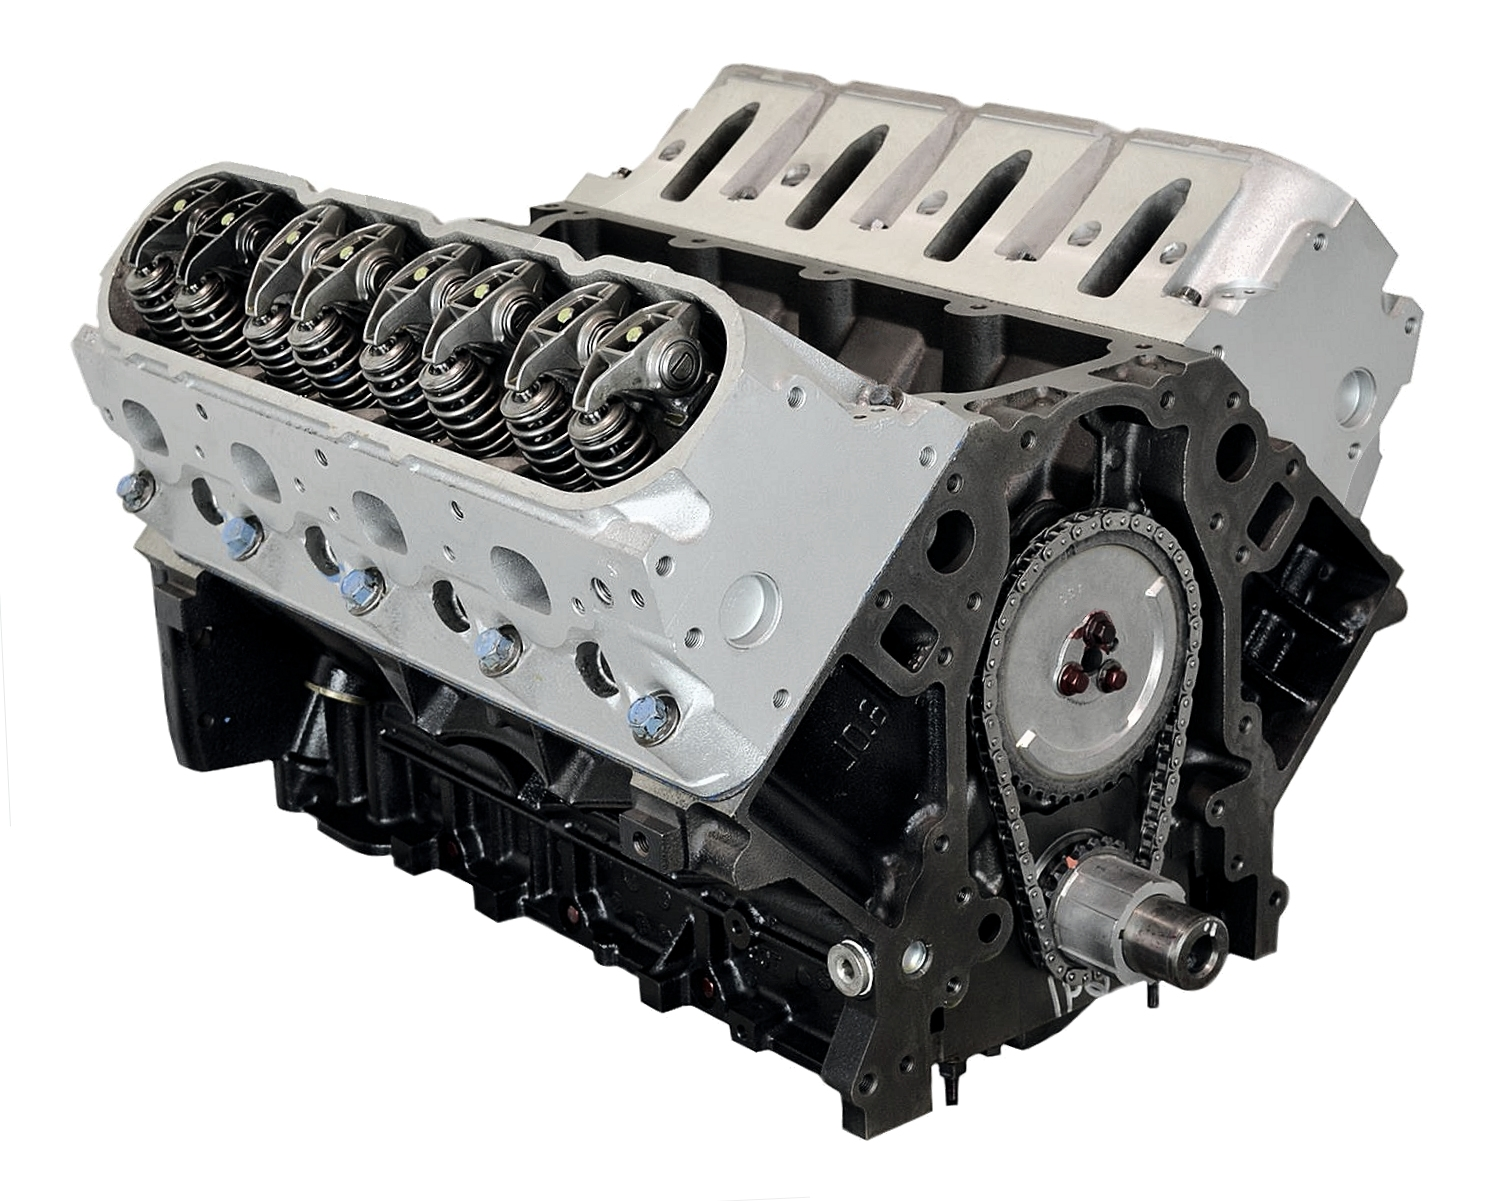 Chevy Avalanche 1500 - 5.3 L59 Engine - 2005-2006 (Vin Code: Z)